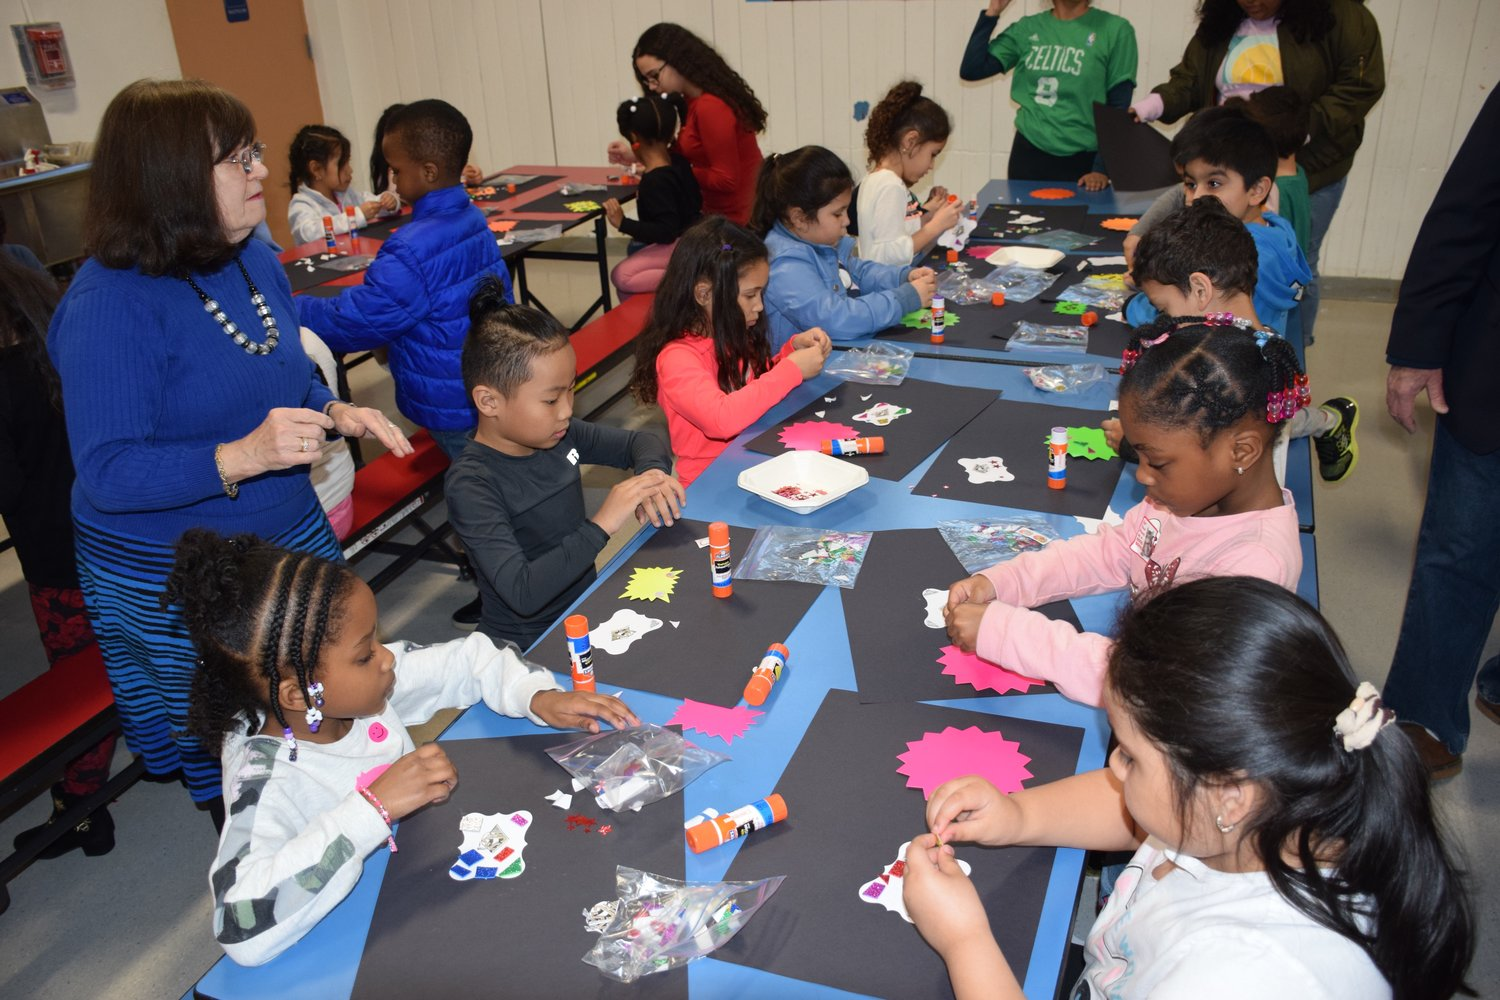 Students at Chestnut Street School in West Hempstead created magnets as part of the school's annual Parent University event on March 19.